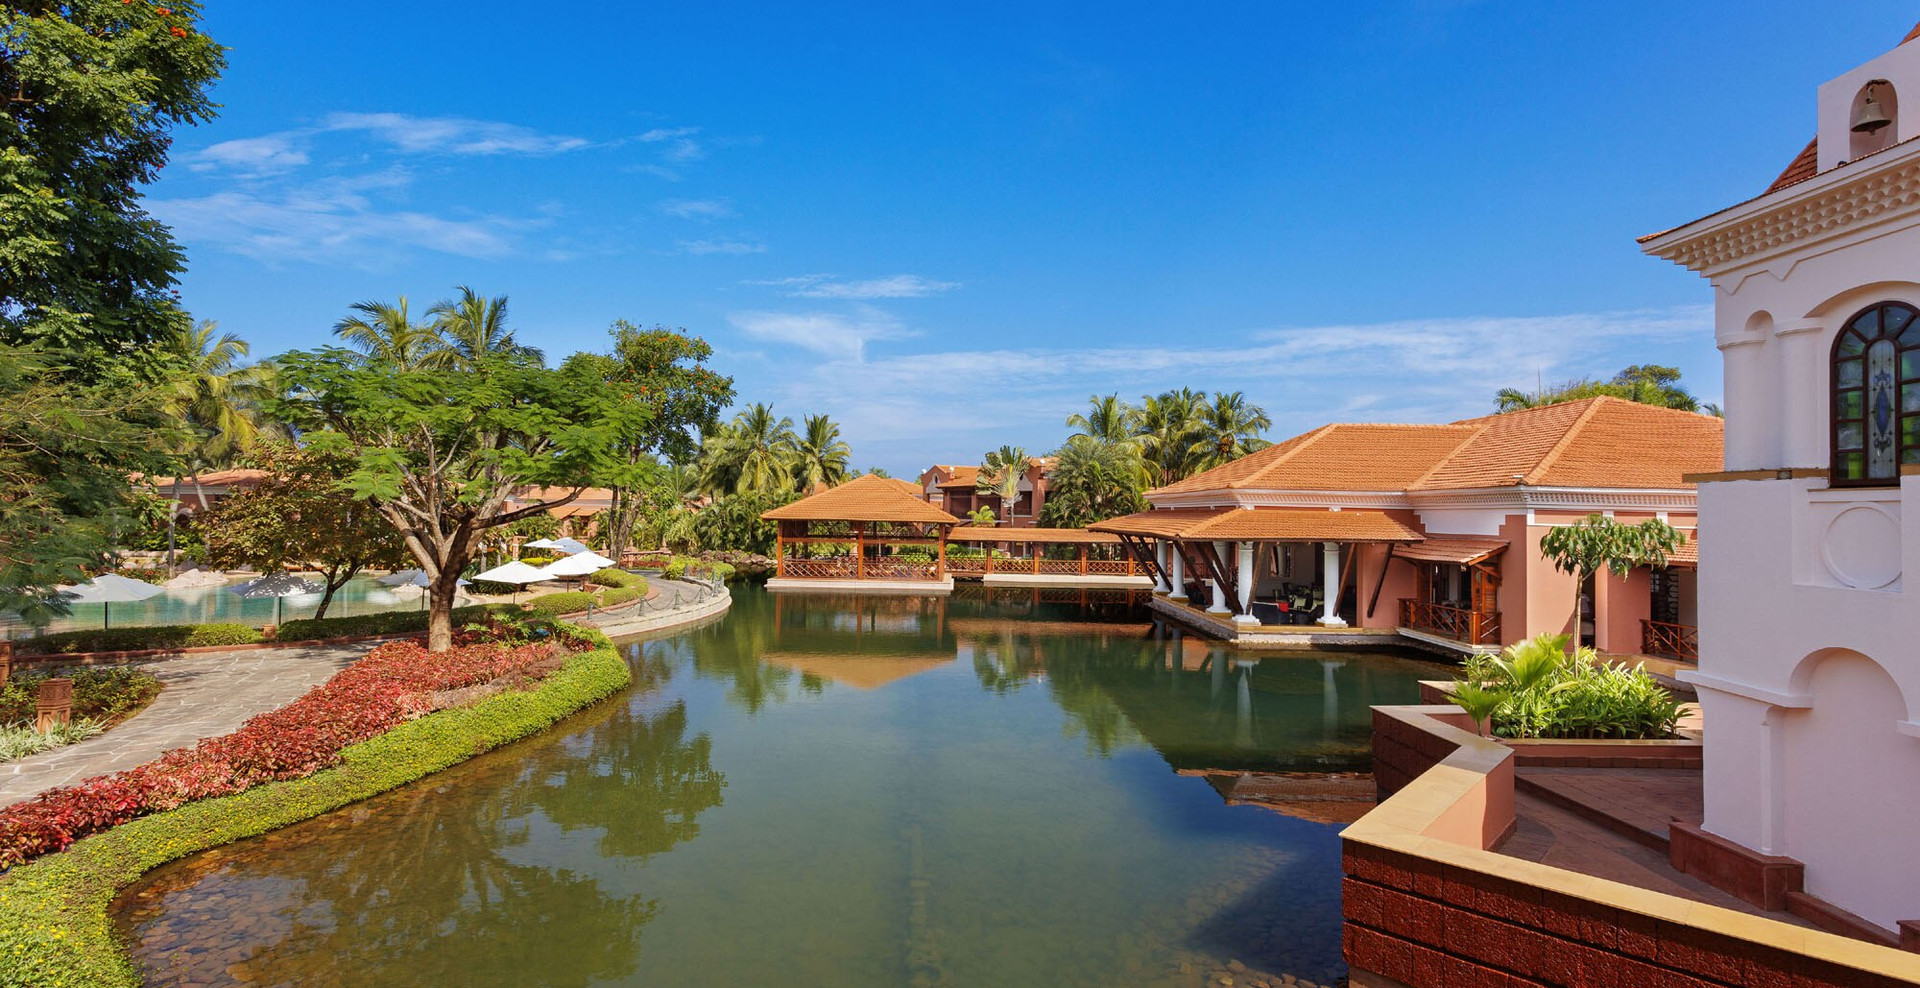 ITC GRAND GOA RESORT